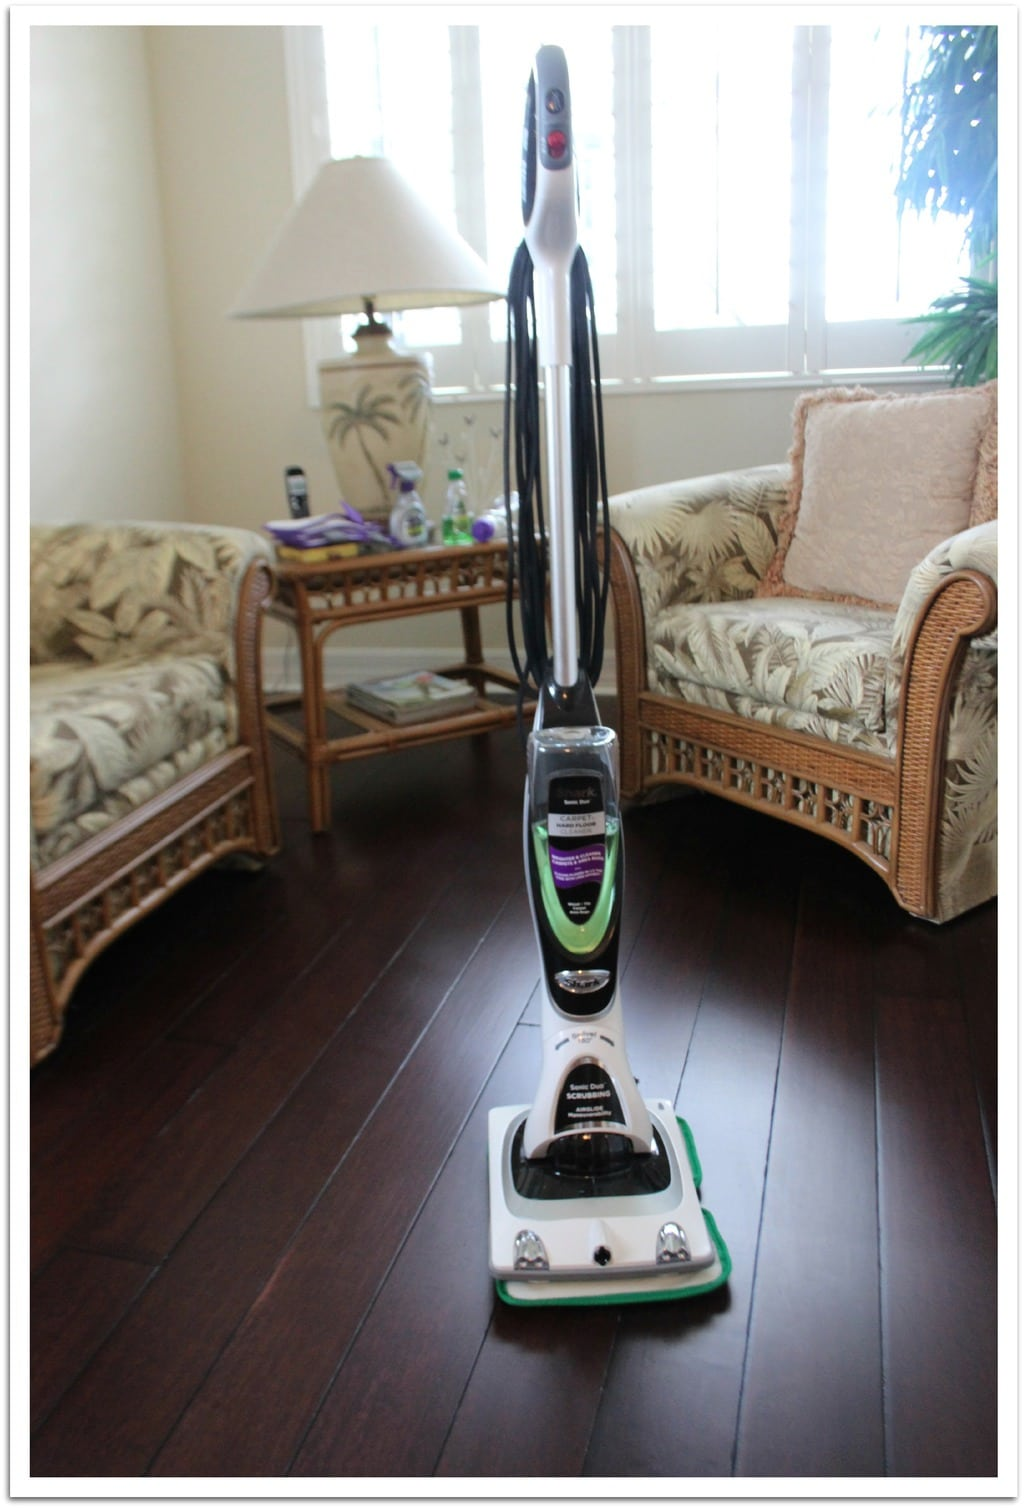 for hardwood now cleaner a dysonatbestbuy floor available floors is best at attachment of wood and tile vacuum dyson gallery carpet buy